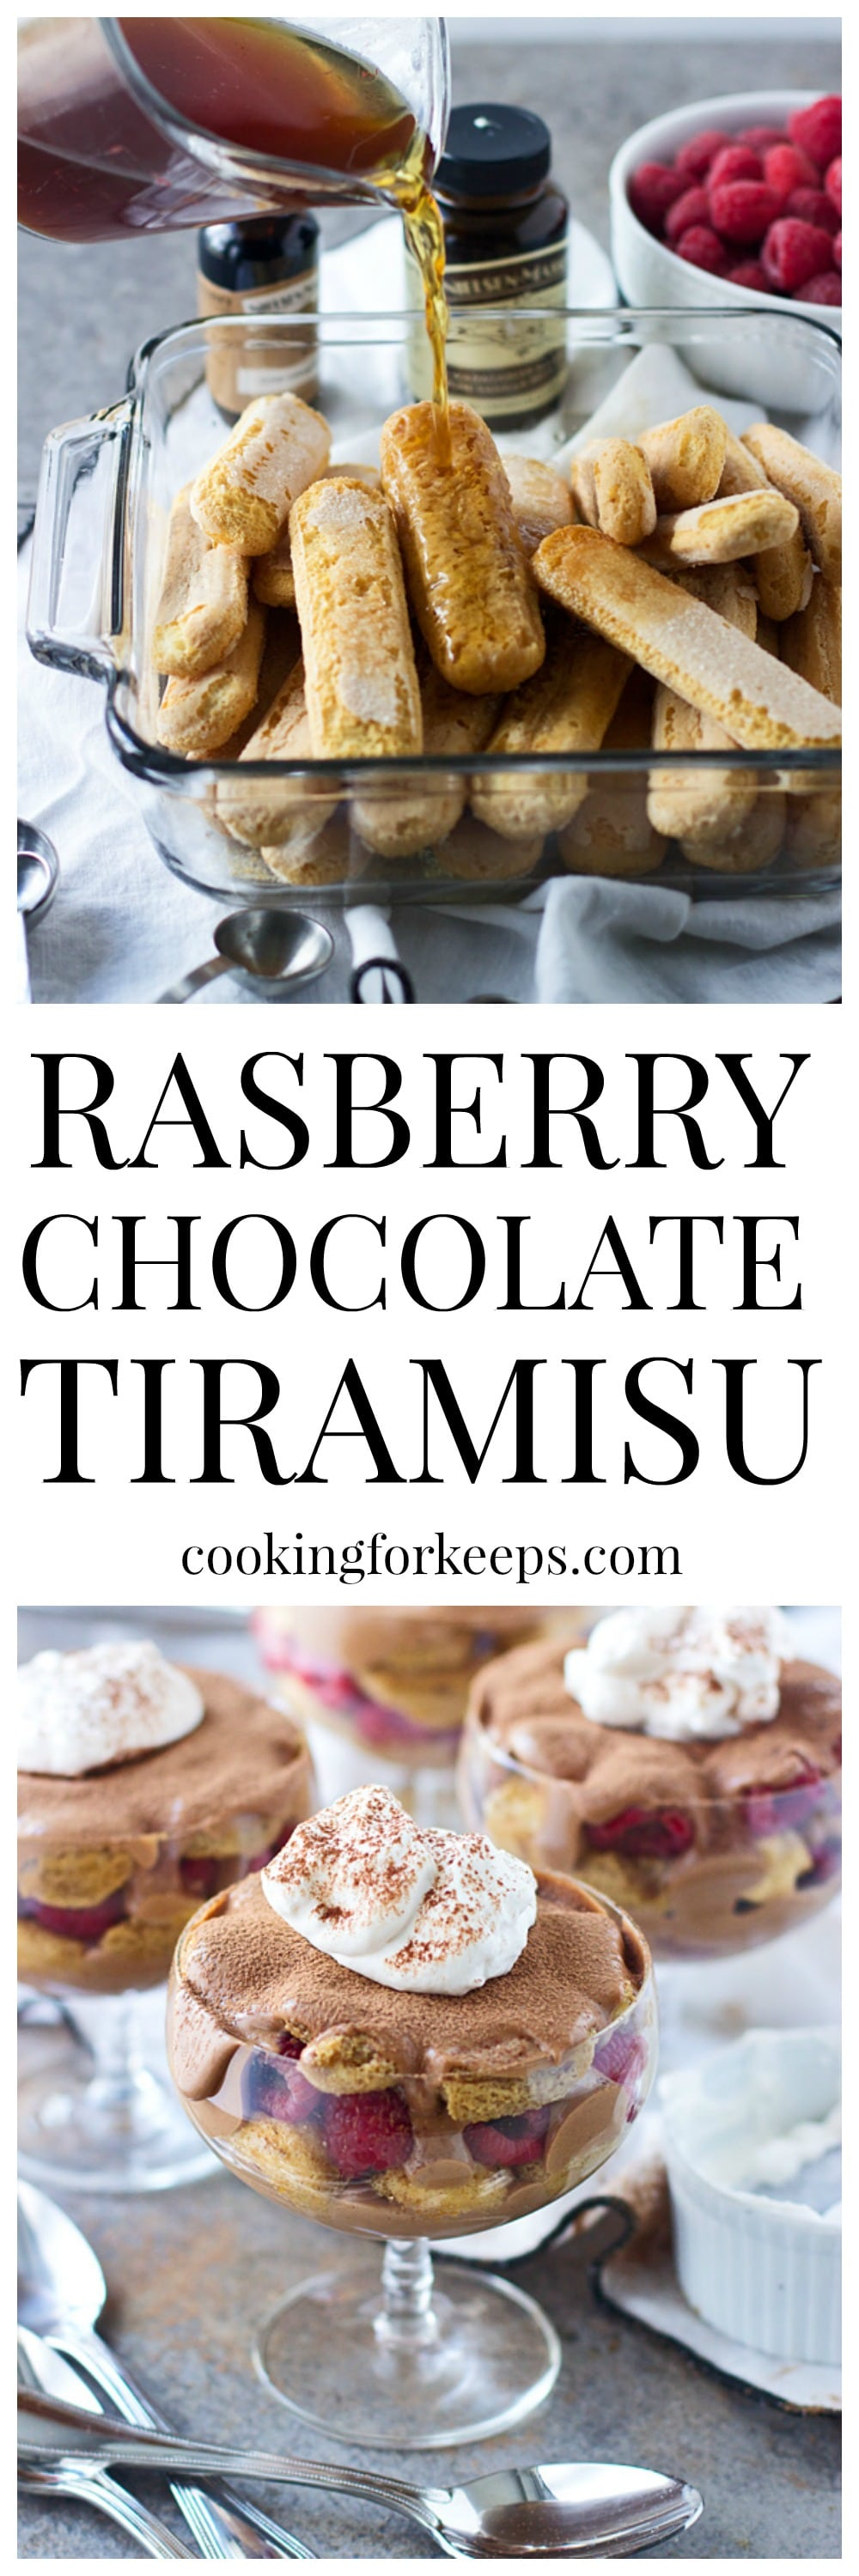 Raspberry Chocolate Tiramisu